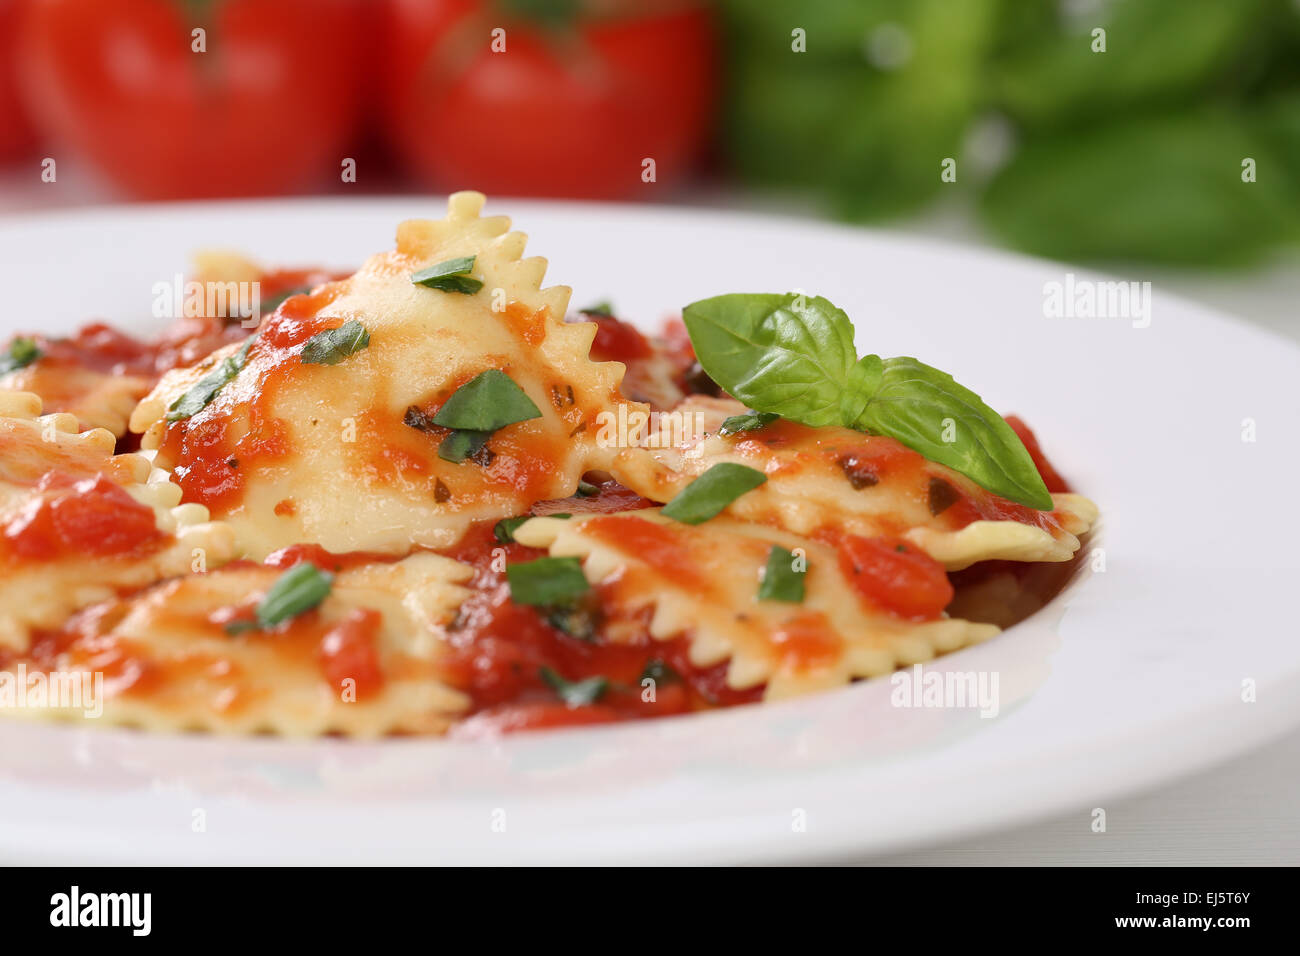 Italian Pasta Ravioli with tomatoes and basil meal on a plate - Stock Image